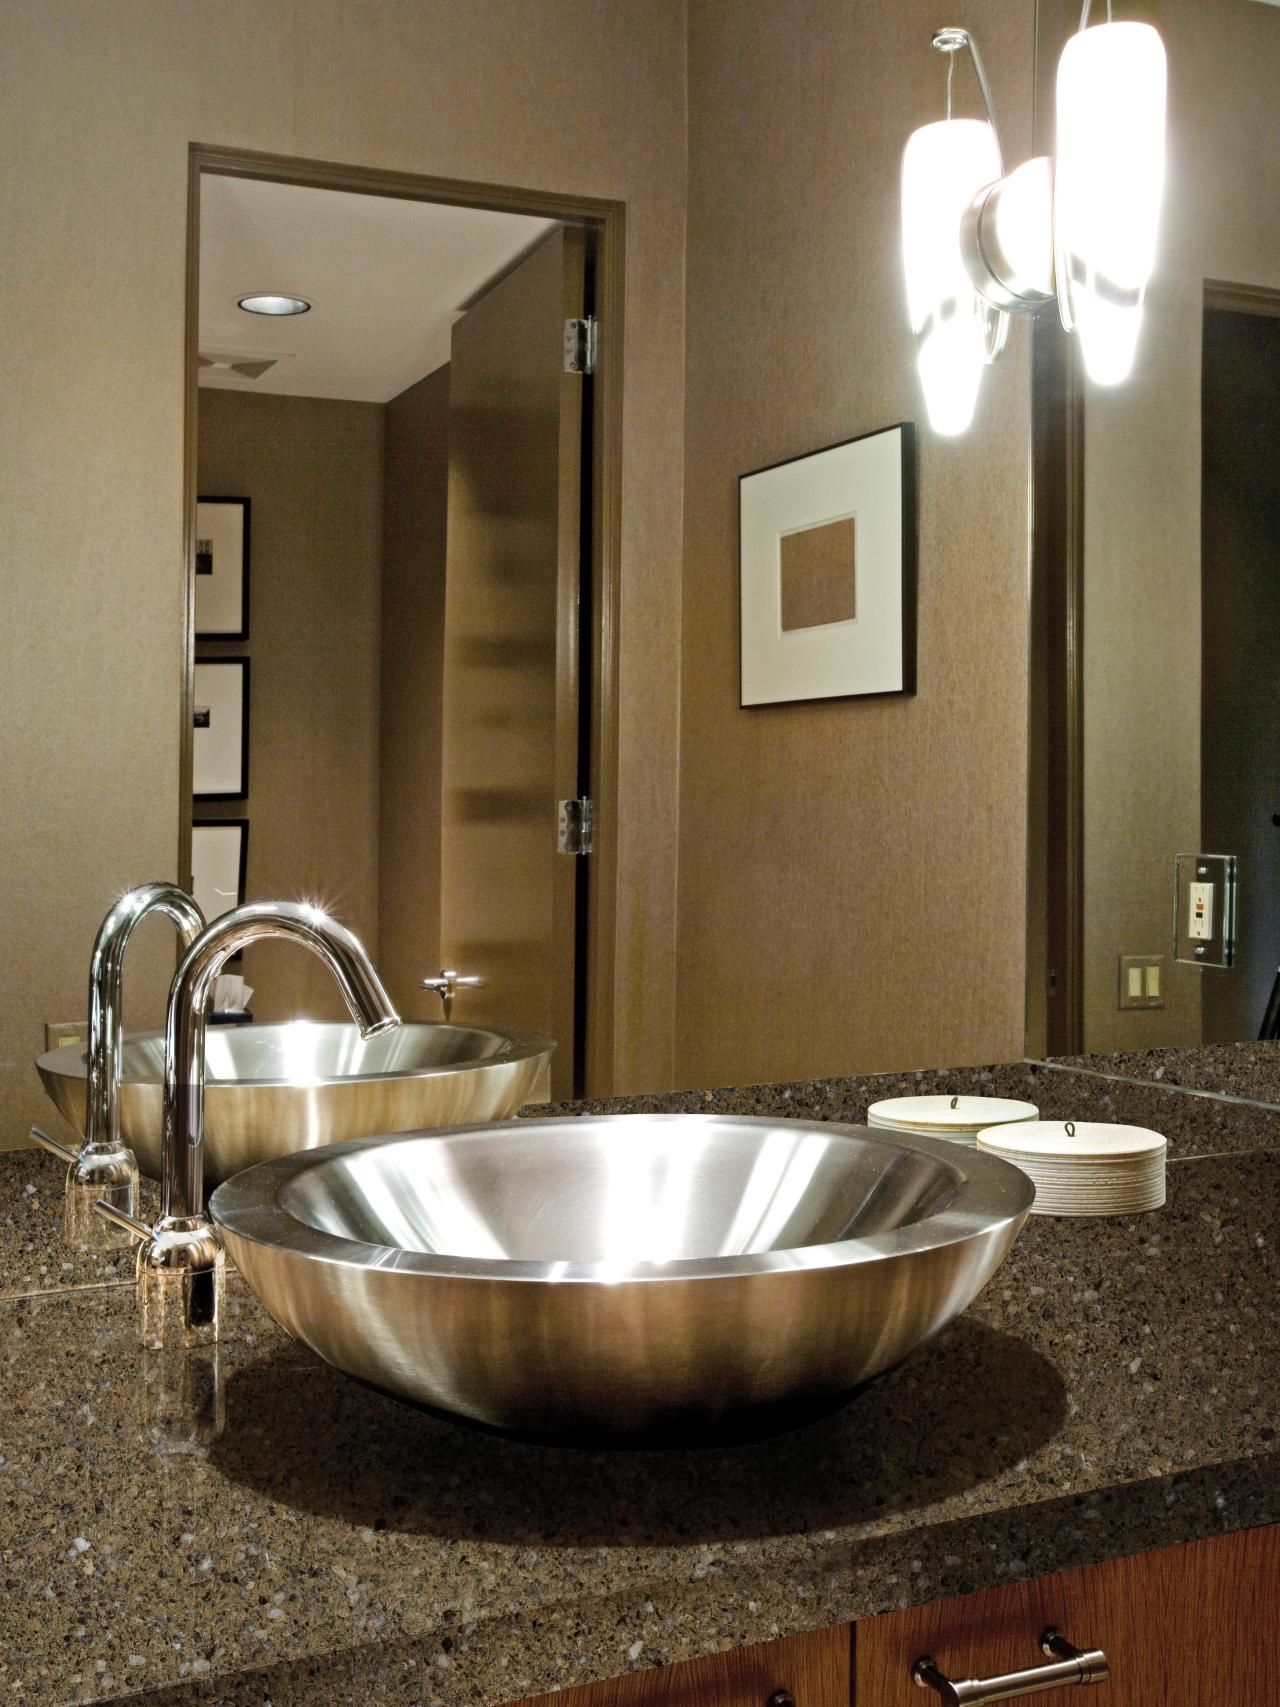 Room Vanity Countertops : Choosing bathroom countertops hgtv